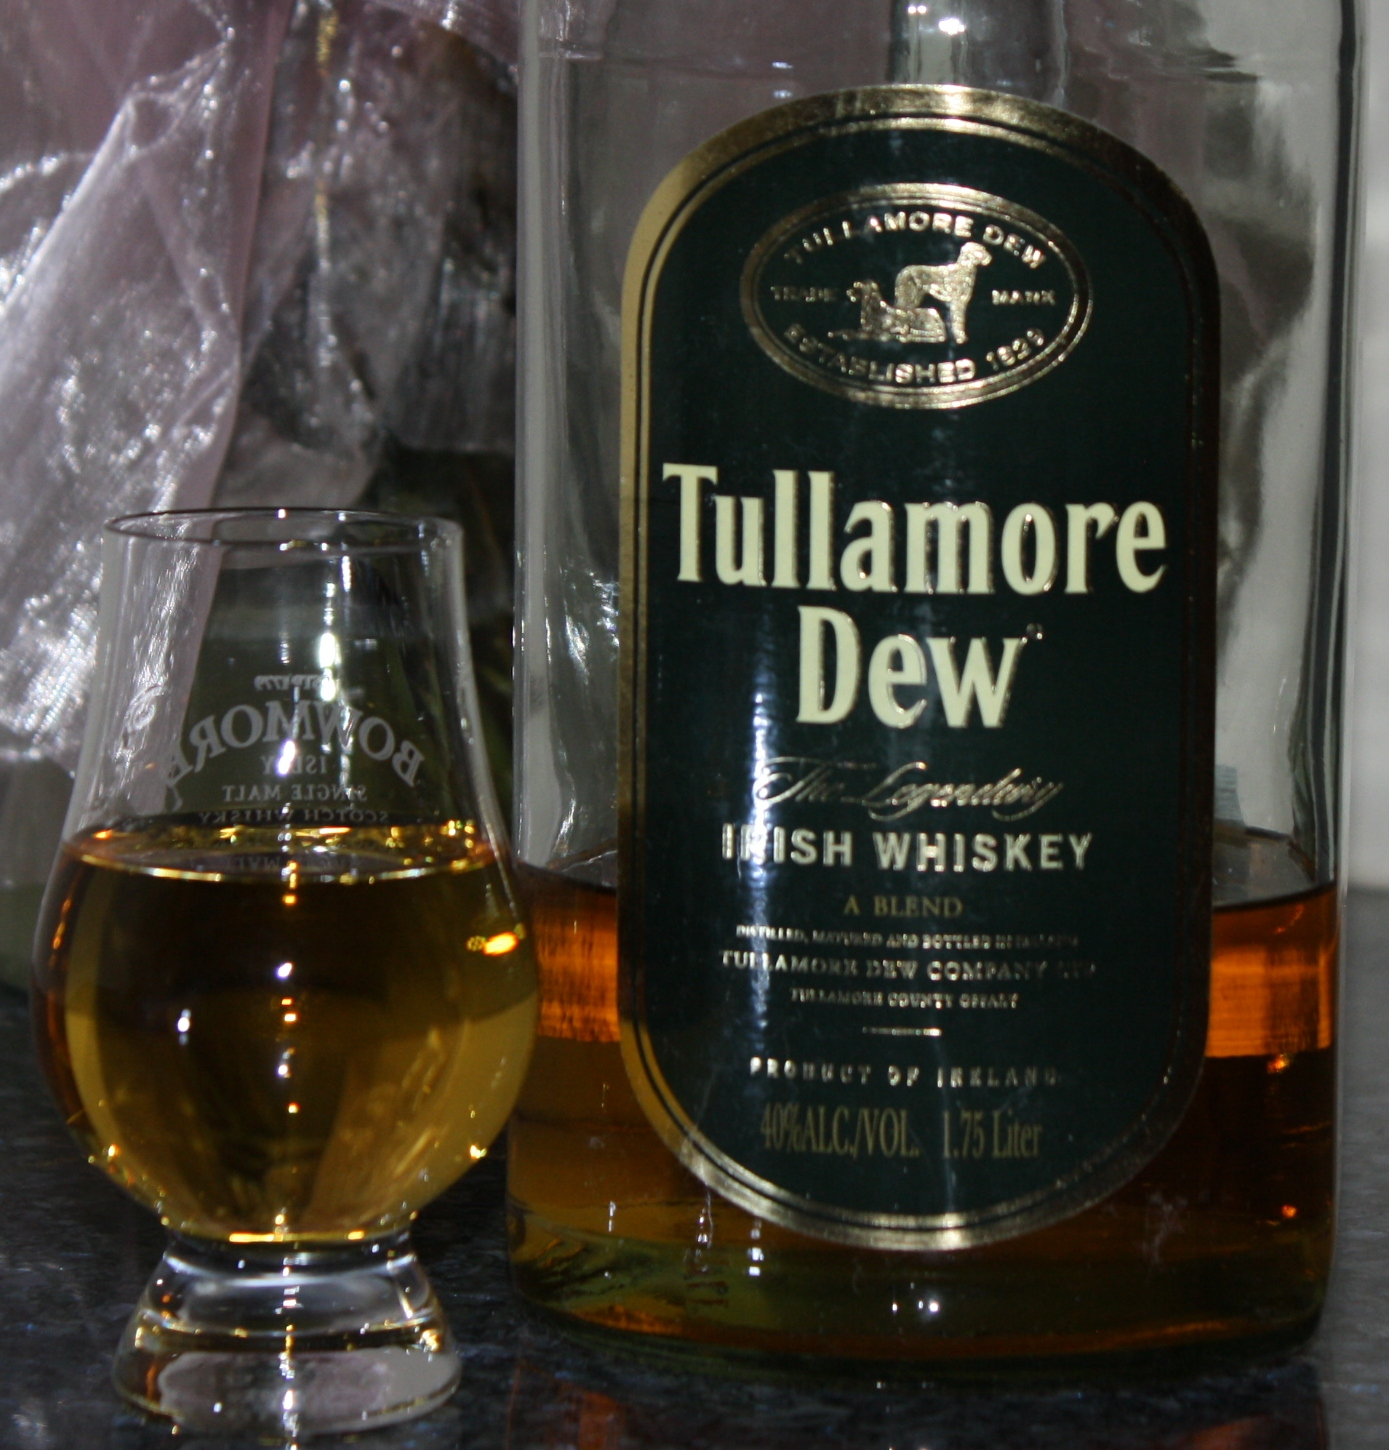 Tullamore Dew Old Fashioned